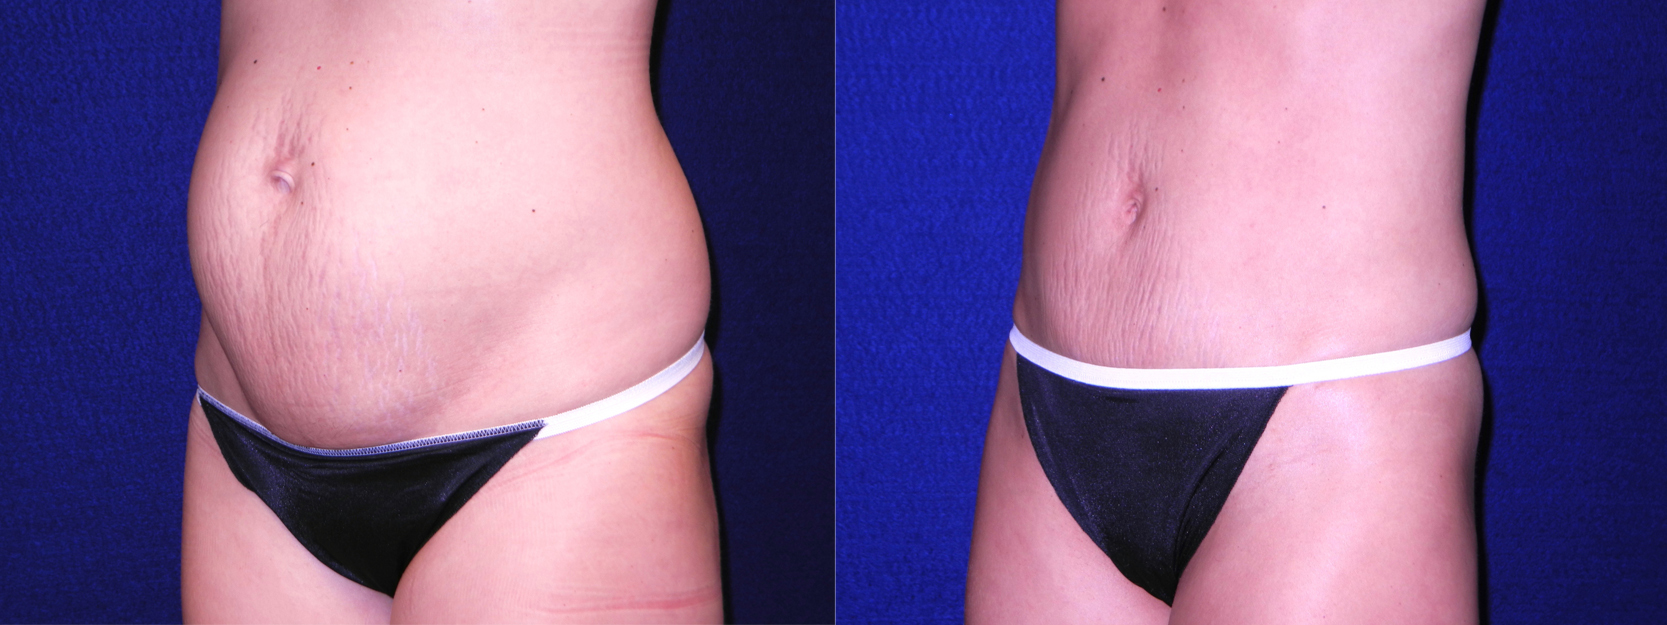 Left 3/4 View - Mini Tummy Tuck